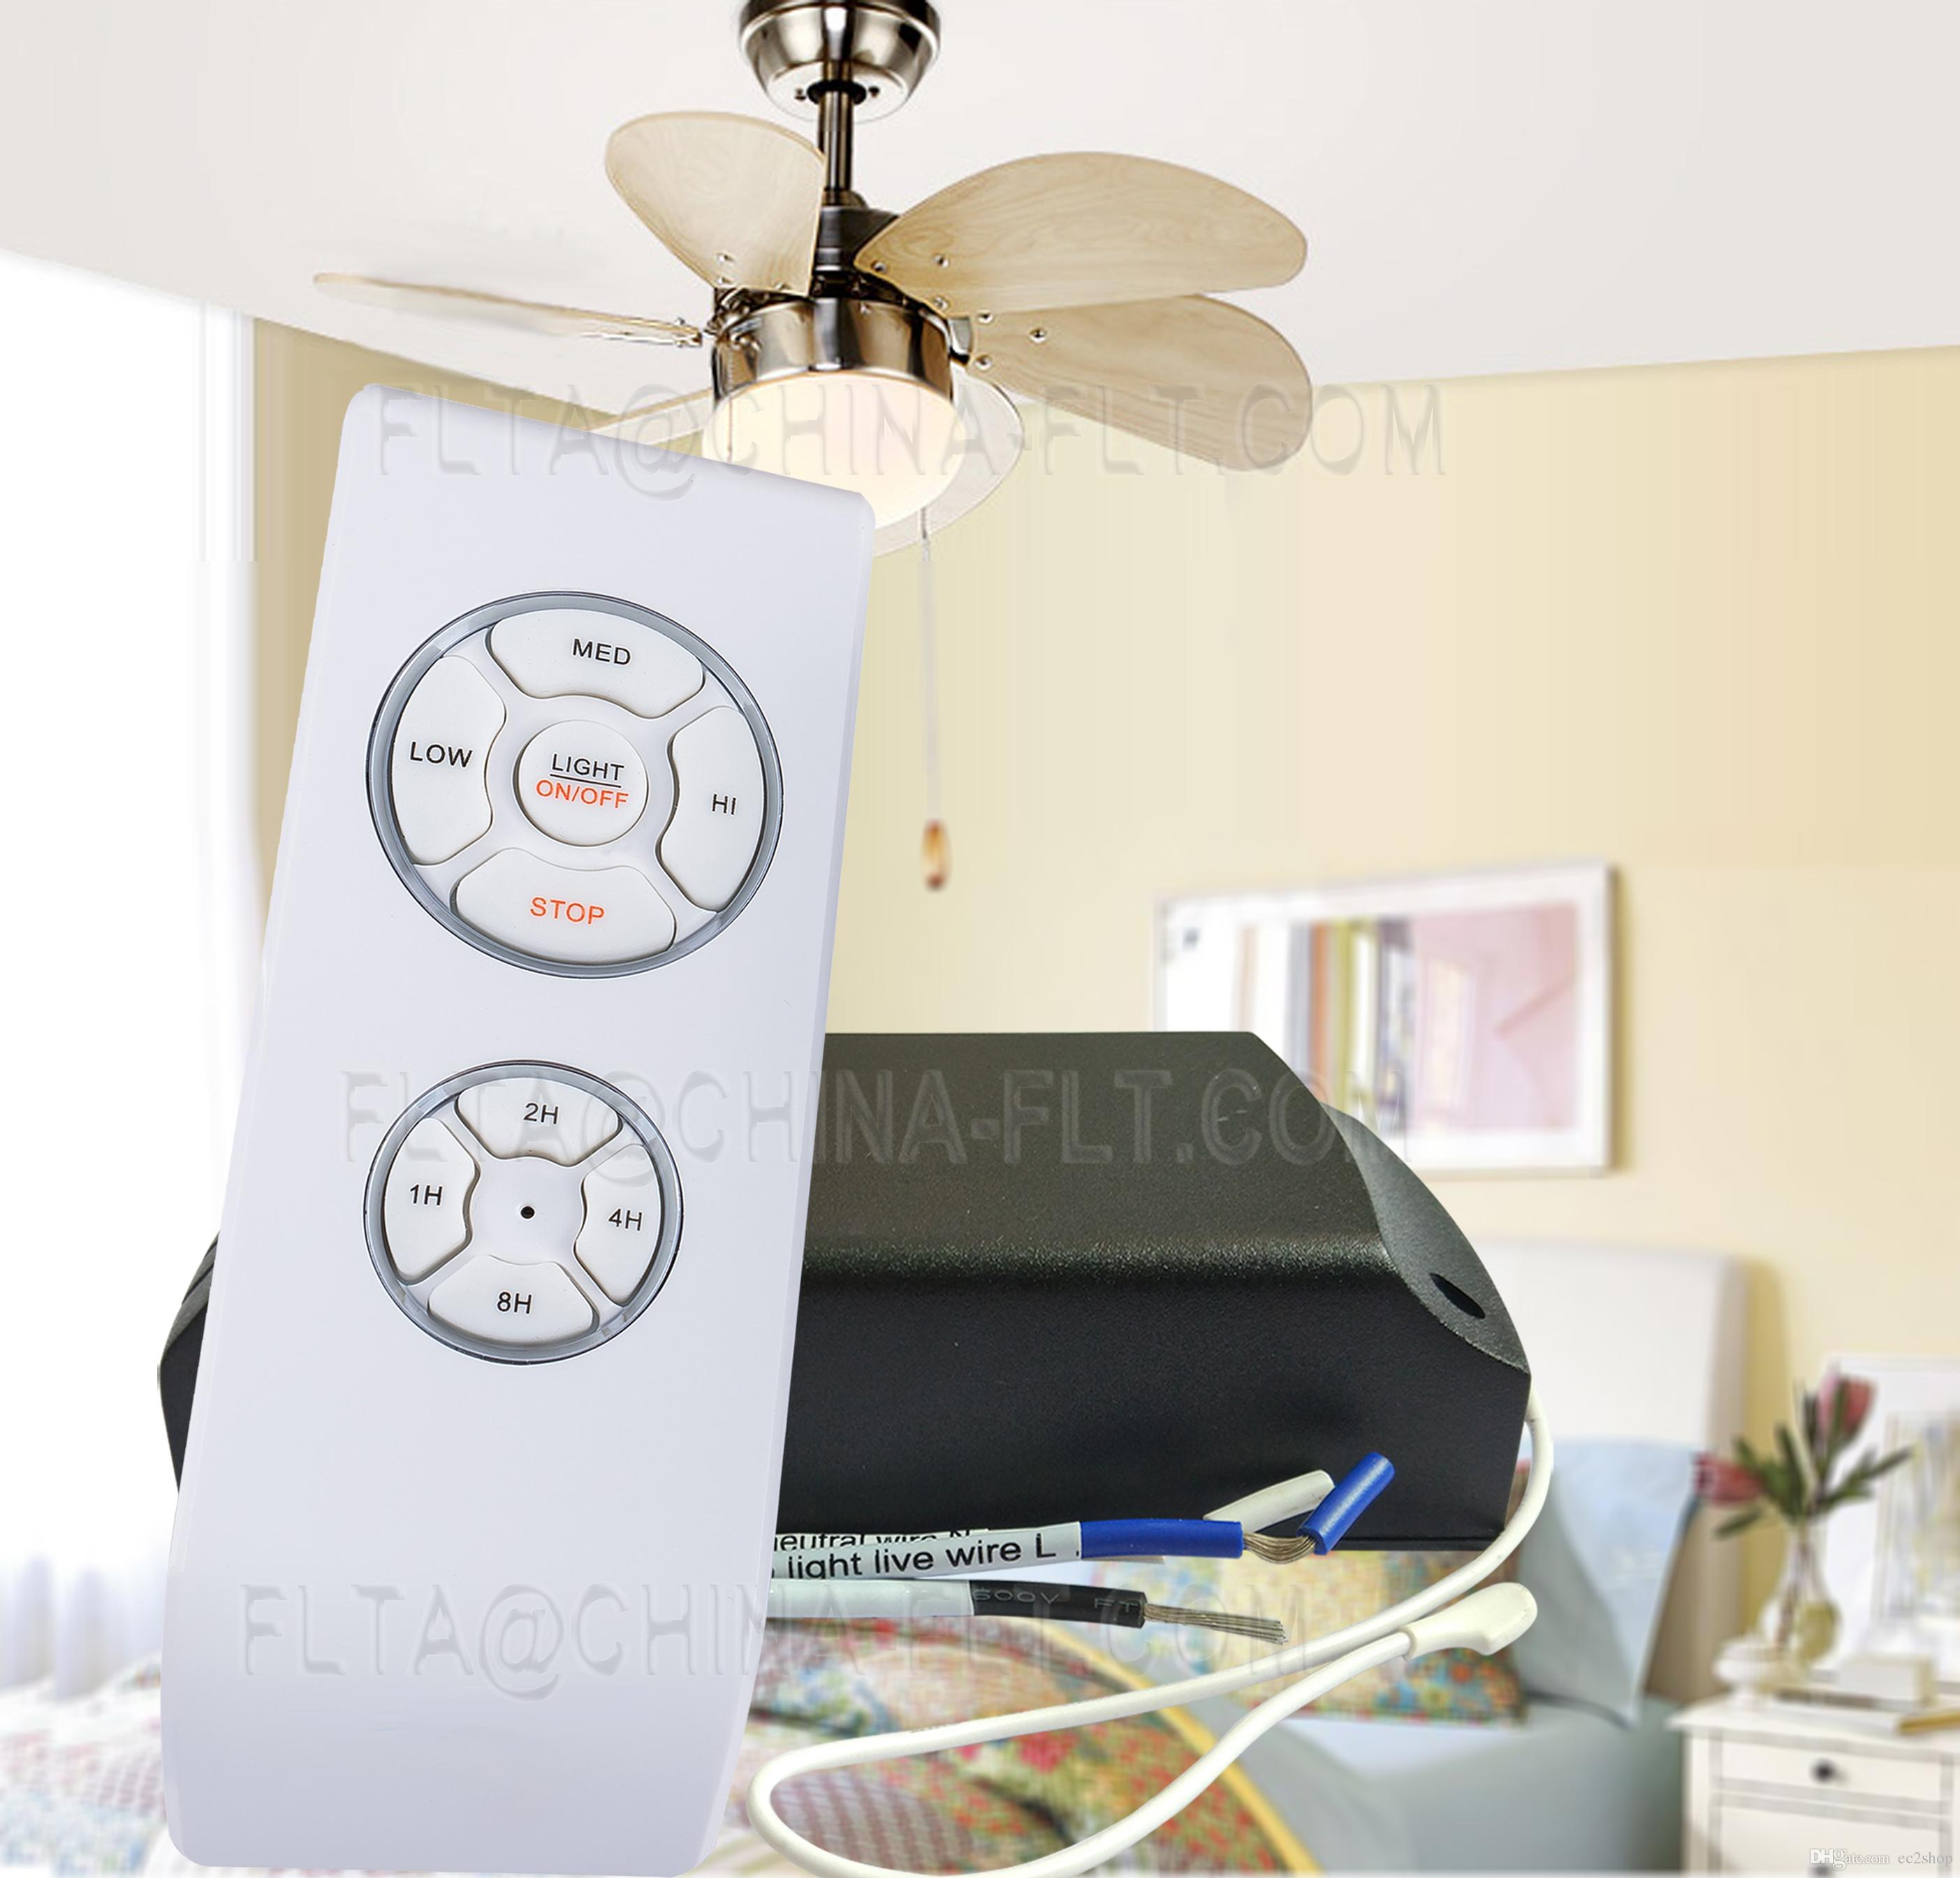 2018 beautiful big brand pated universal wireless remote control f2 2018 beautiful big brand pated universal wireless remote control f2 for ceiling fan light of 3 speed and timer from ec2shop 581 dhgate aloadofball Gallery